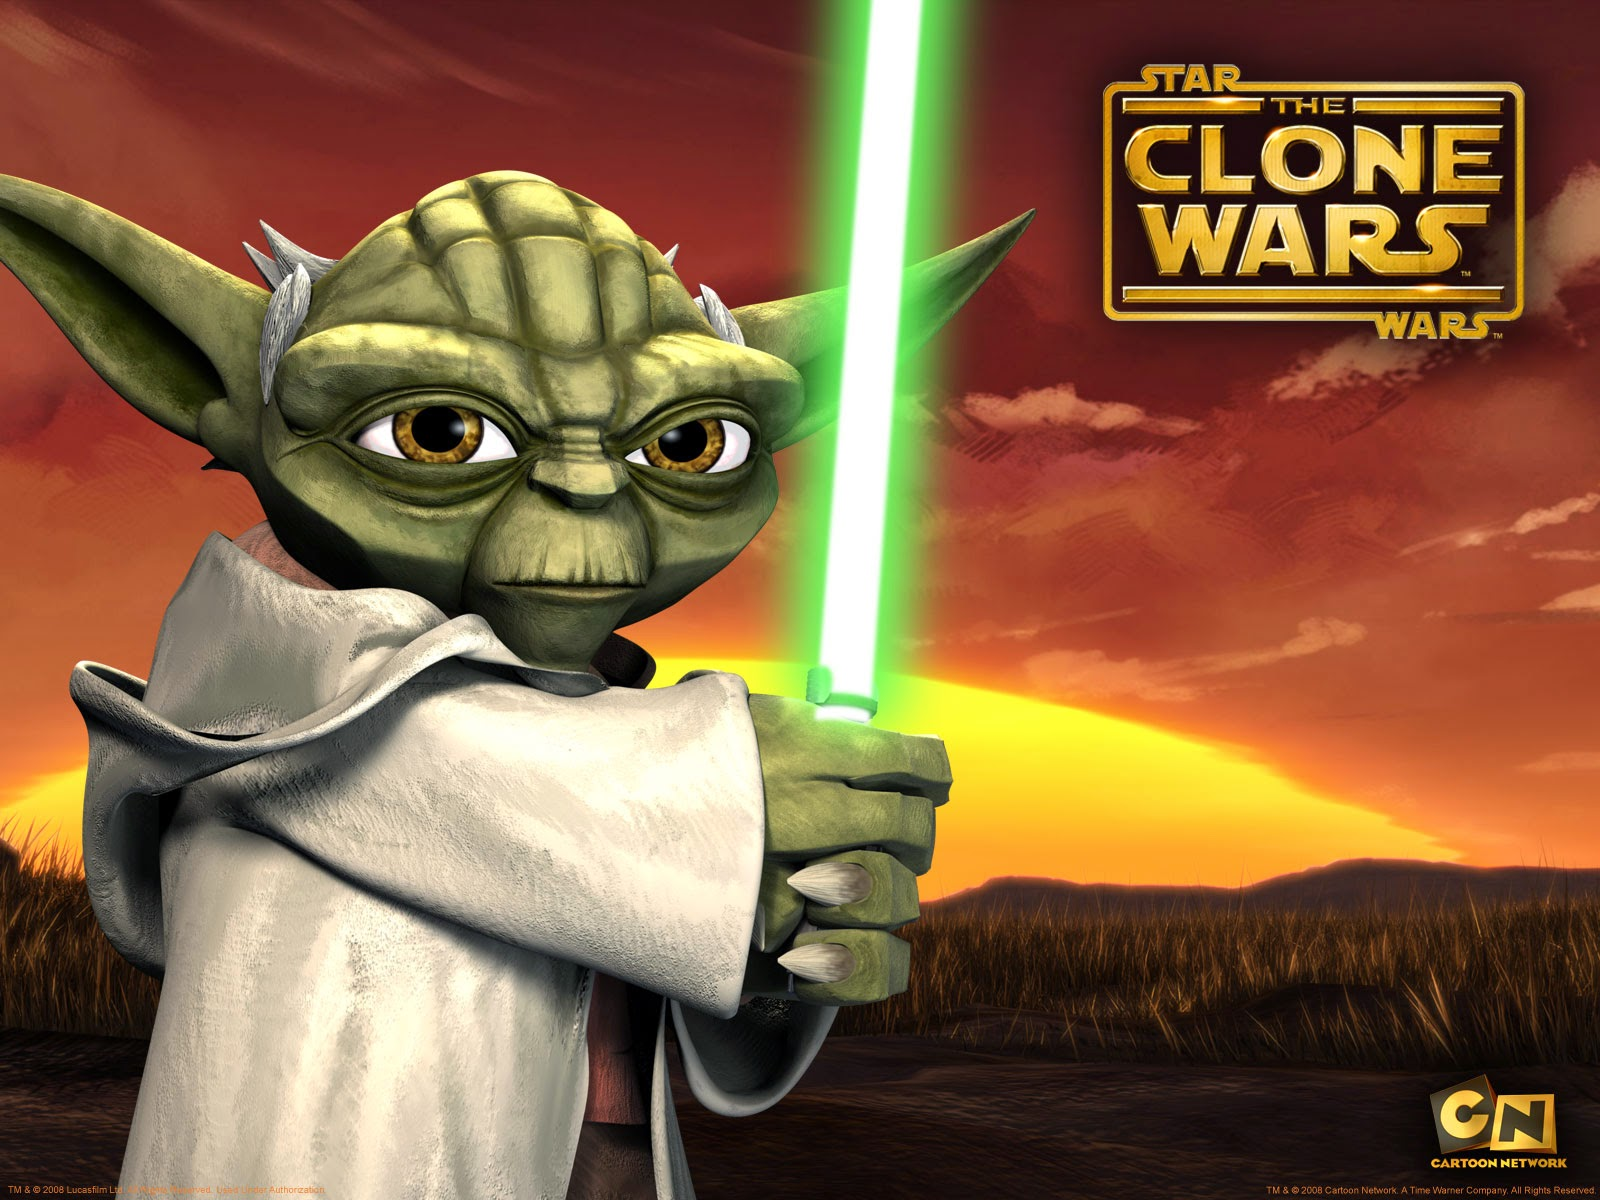 The Clone Wars Yoda Cartoon Network